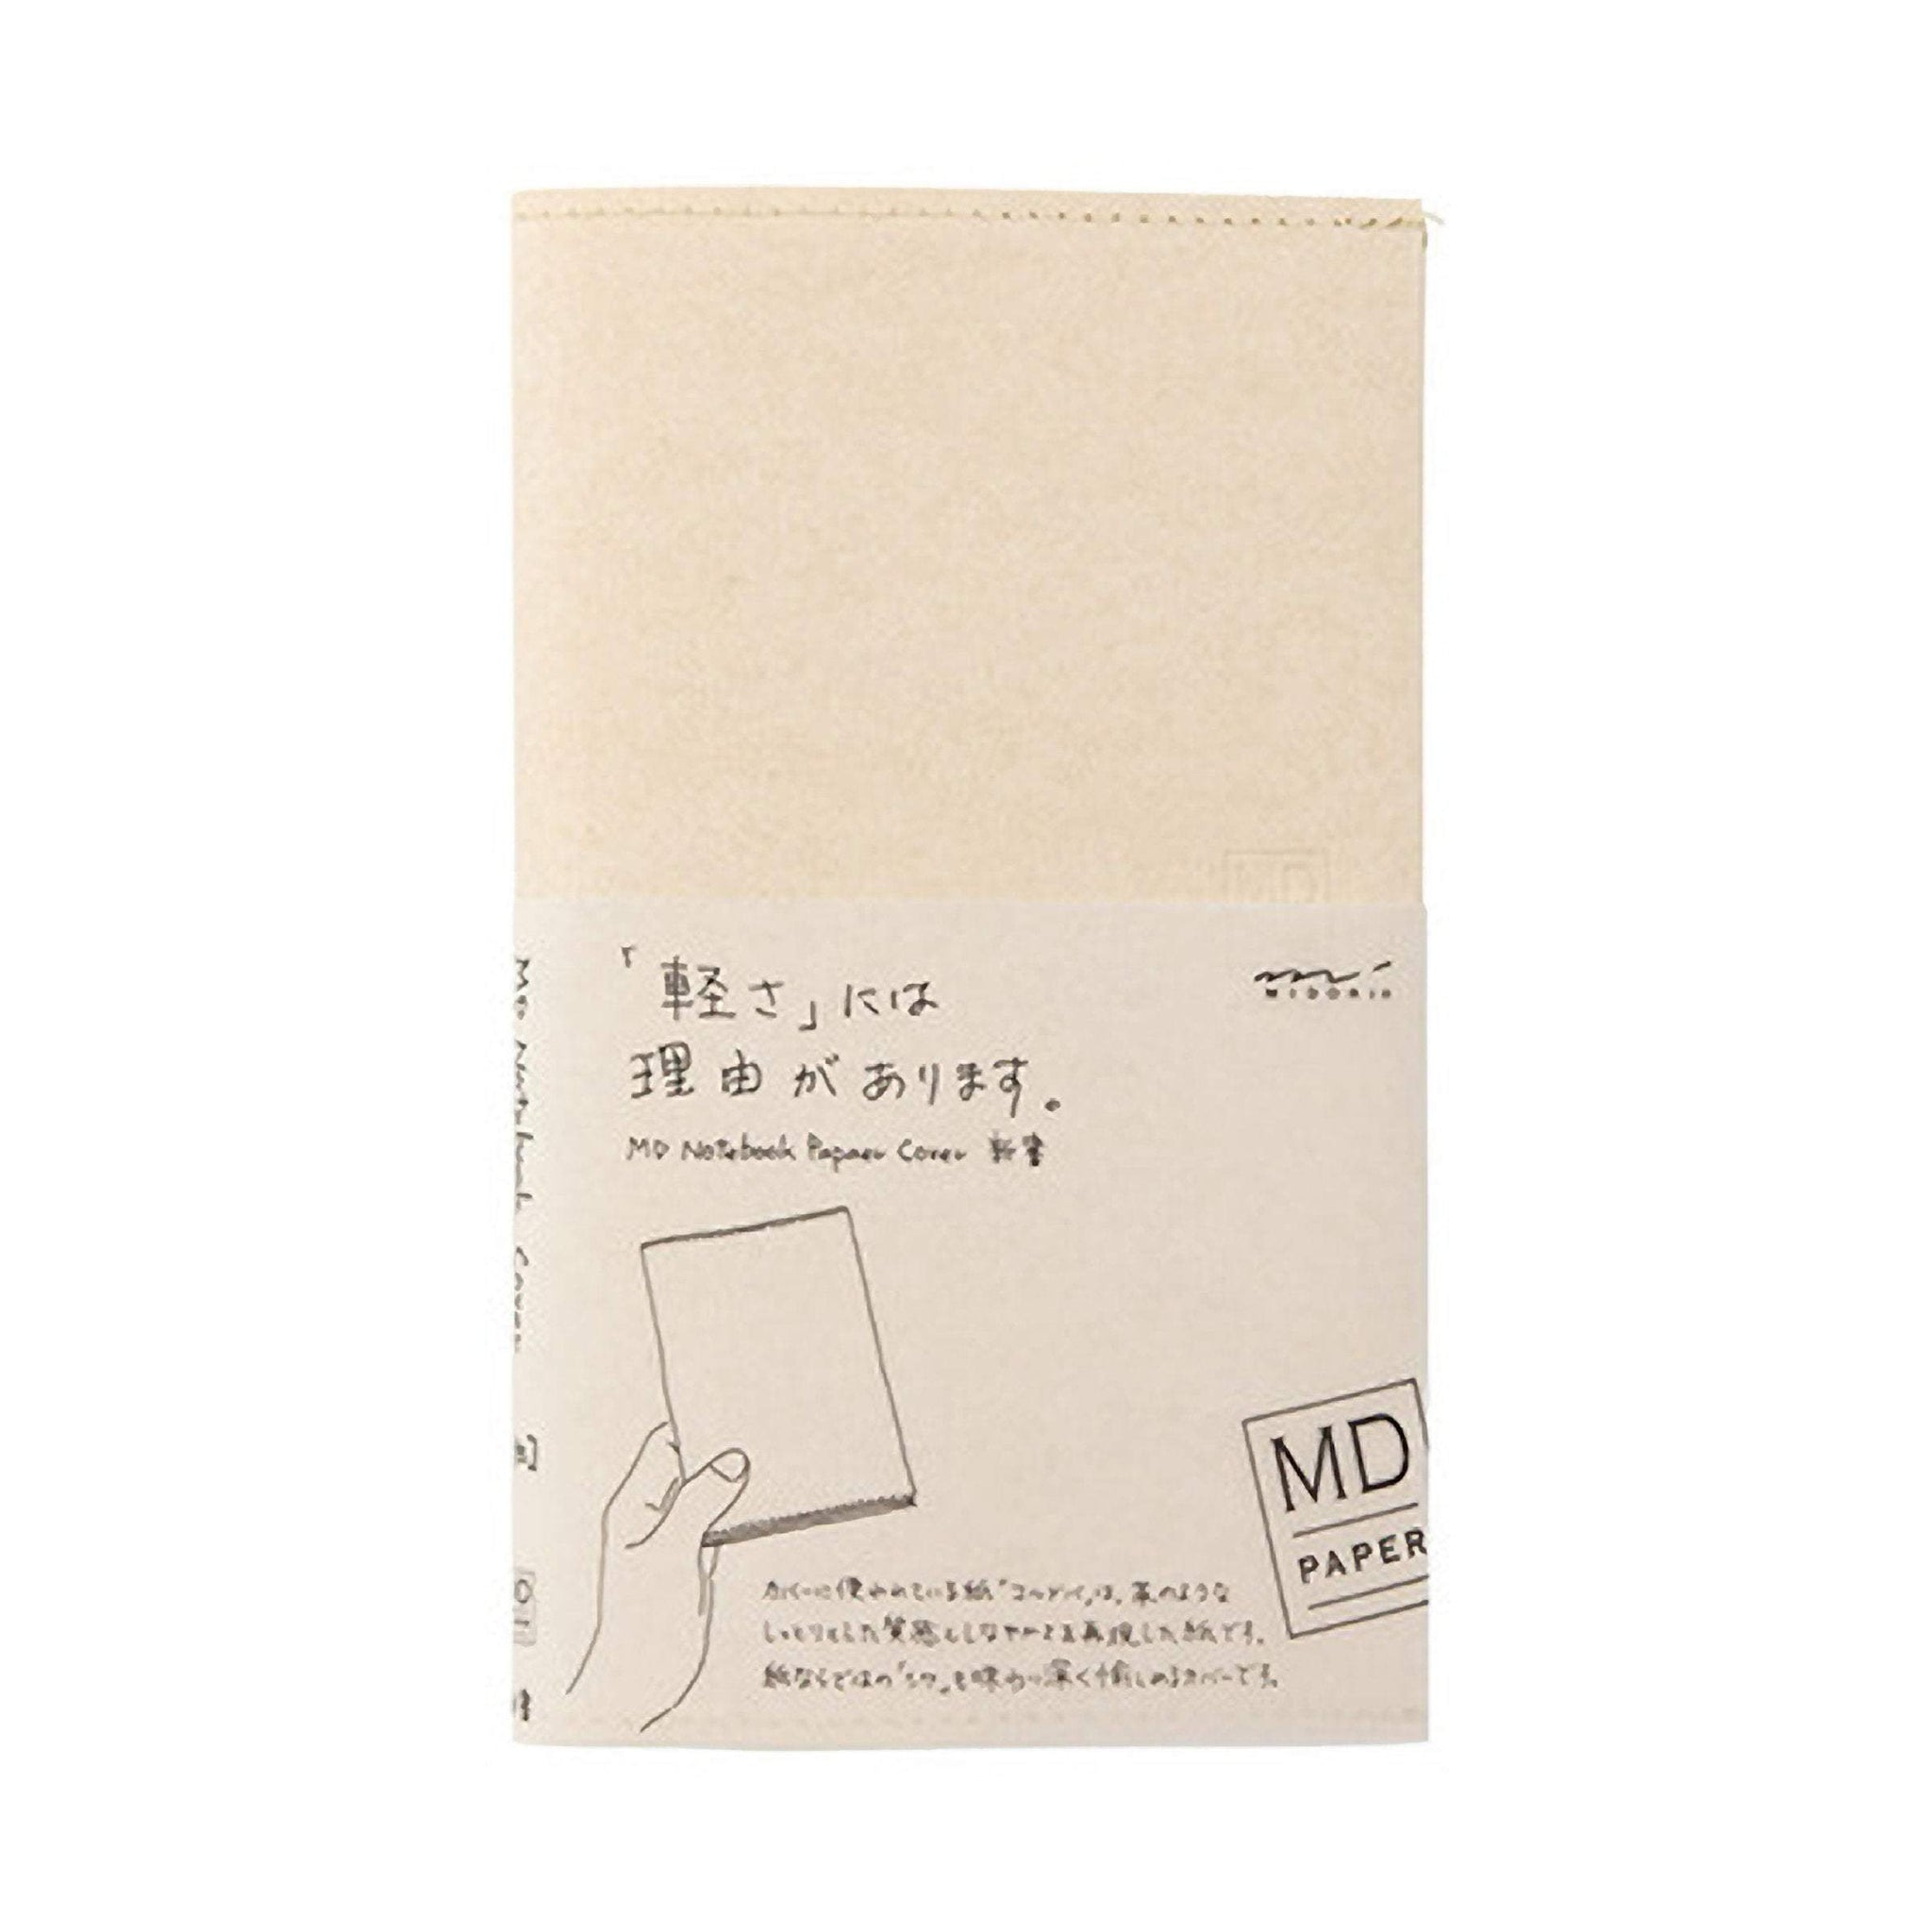 B6 Midori Paper Cover - The Stationery Life!